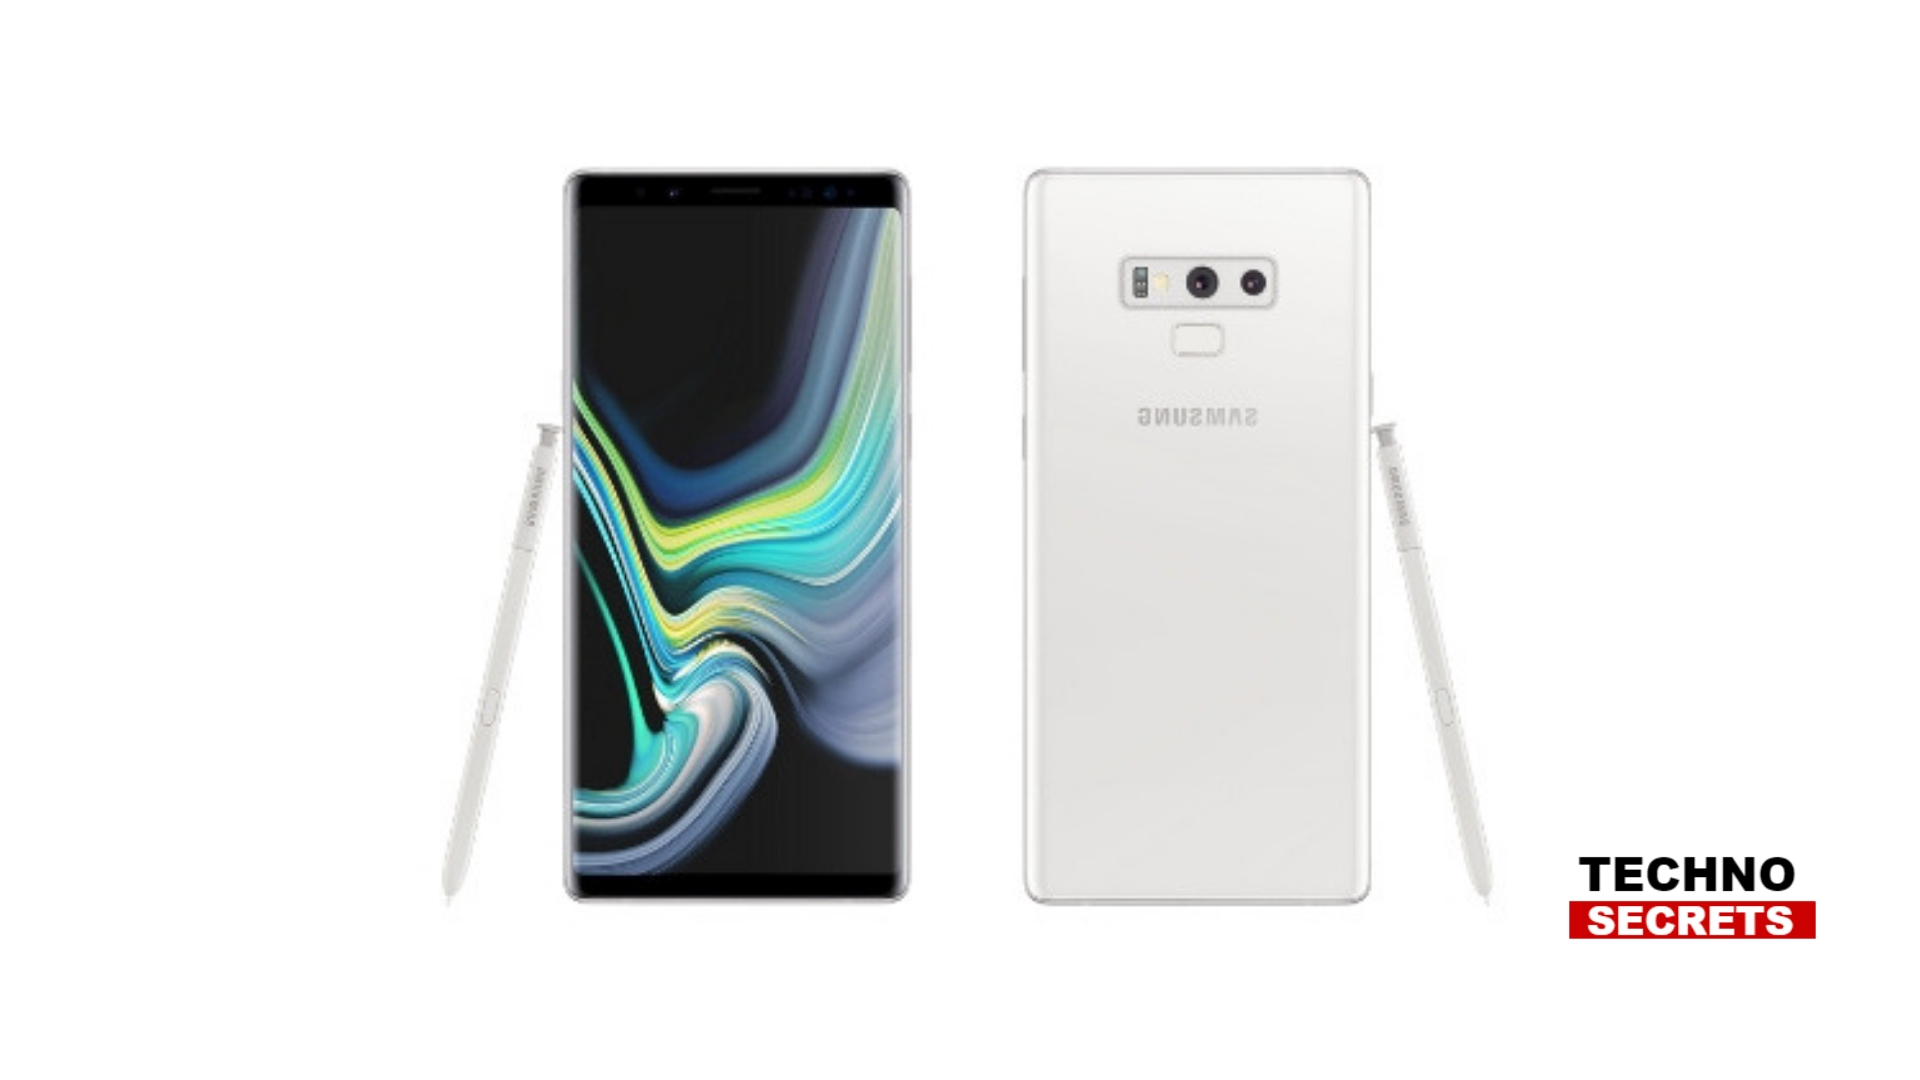 New Colour Variants For Samsung Galaxy Note 9 And Galaxy S9+ Launched In India